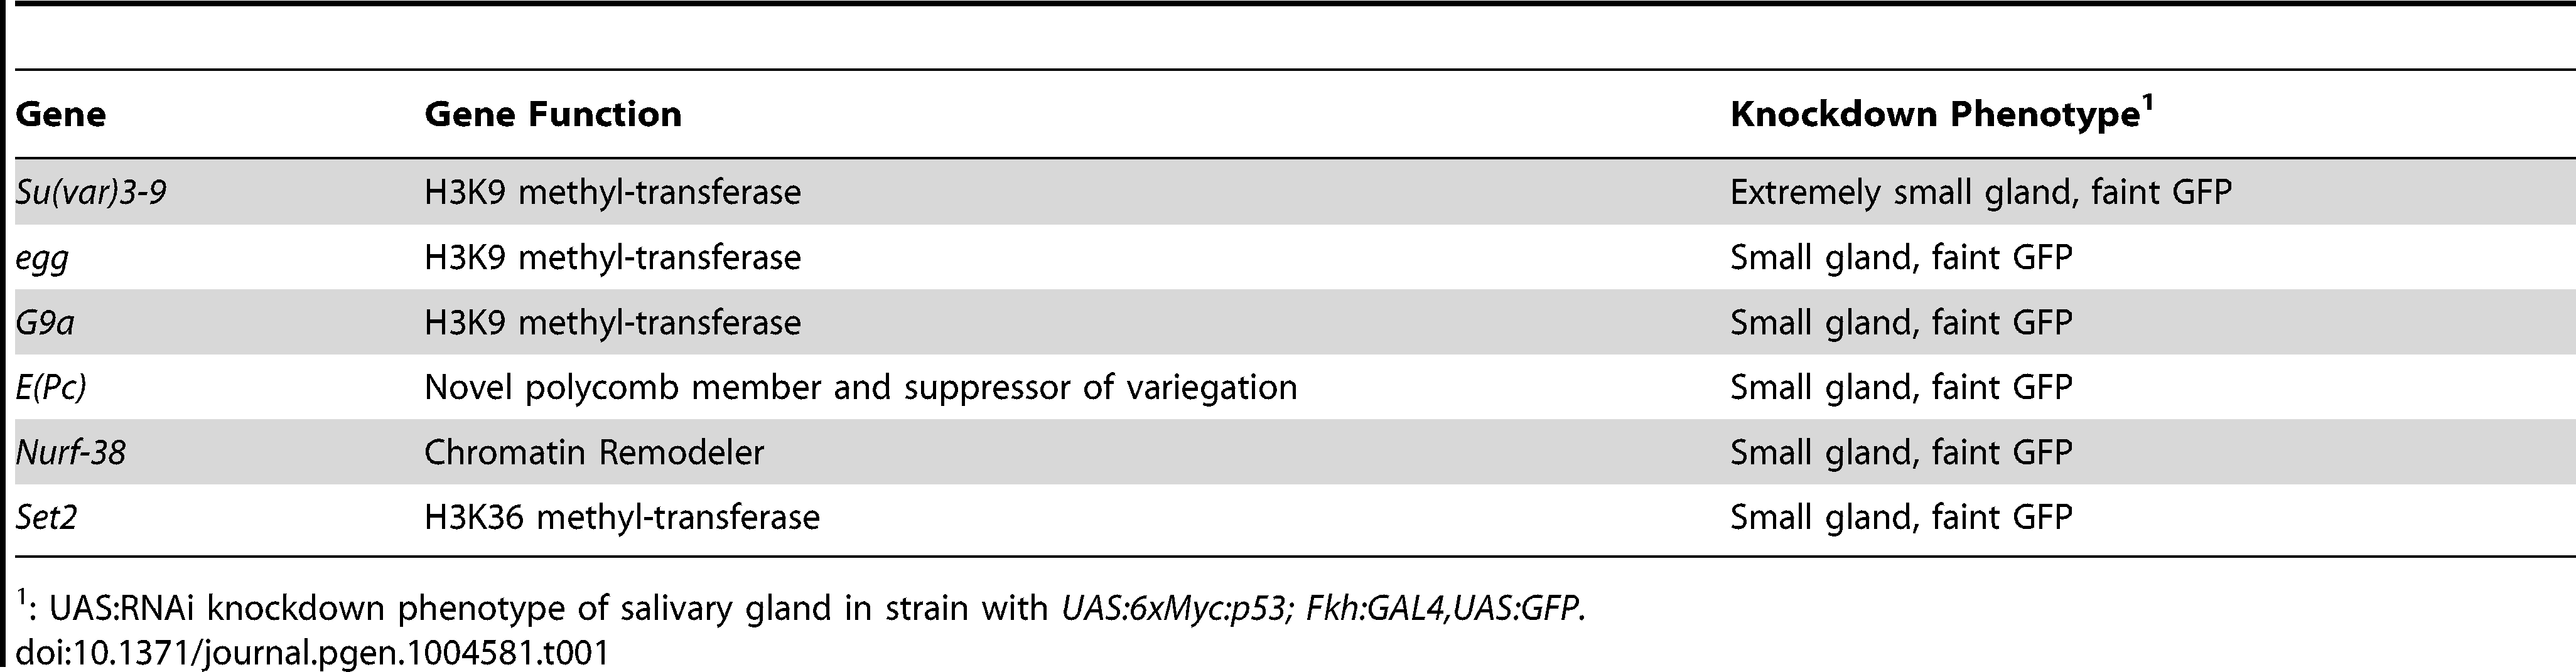 Genes recovered in an RNAi screen for salivary gland cell death.